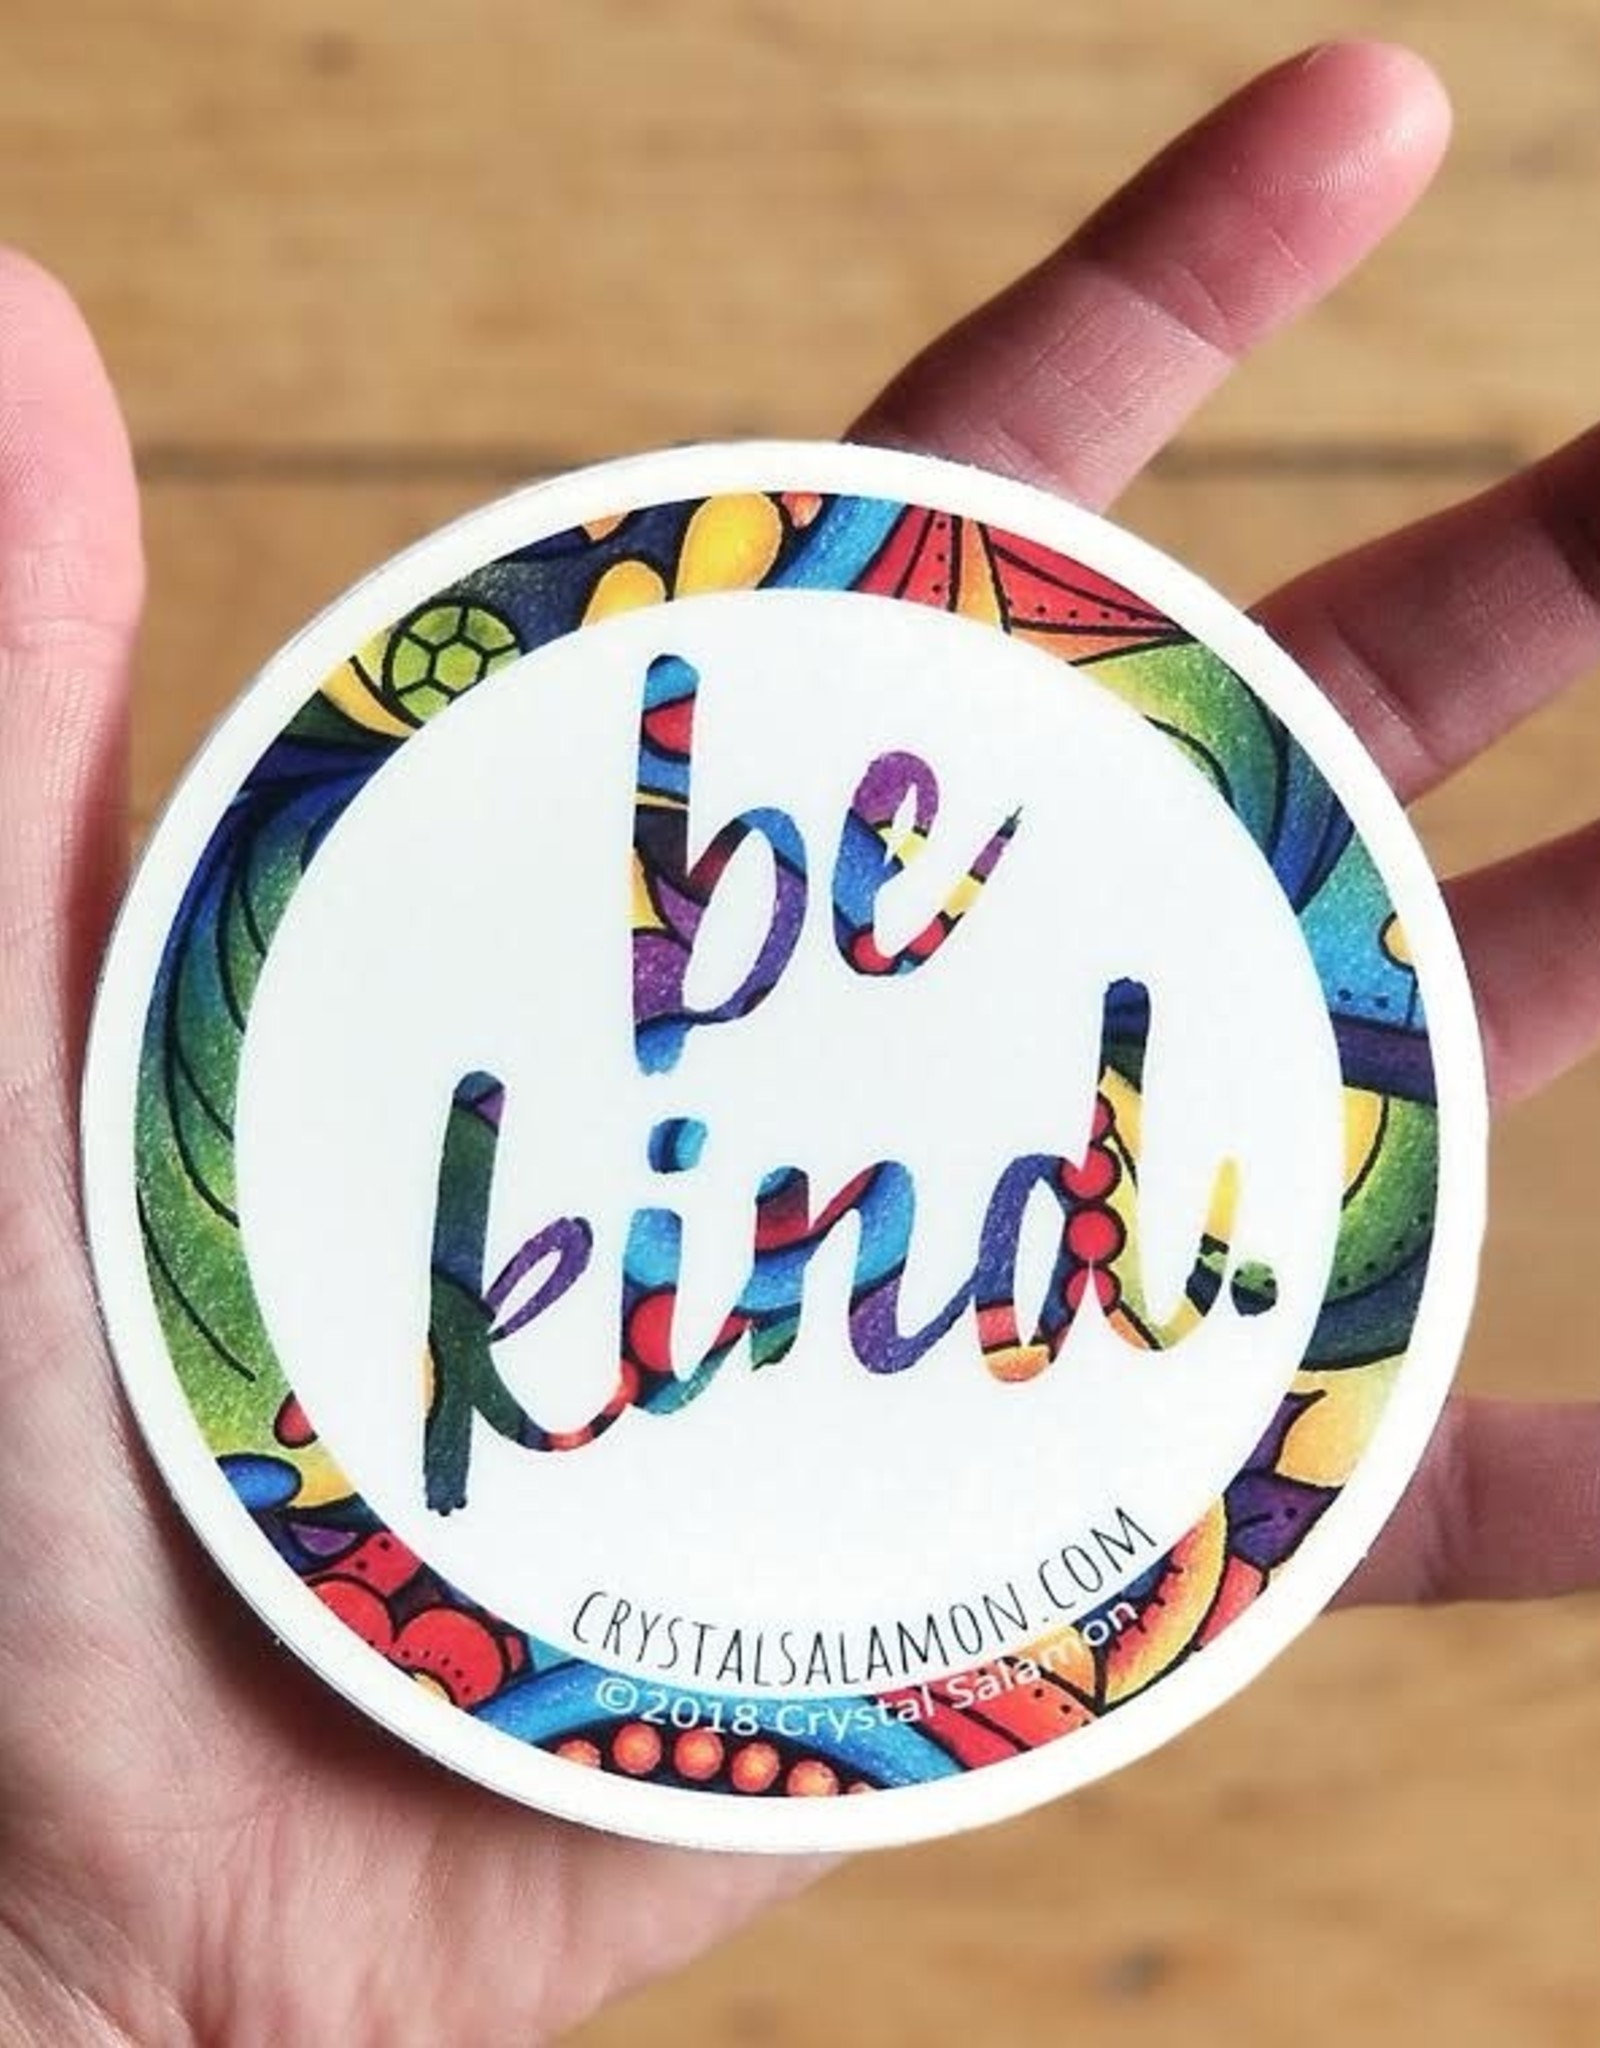 Crystal Salamon Colouring Sticker-Be Kind